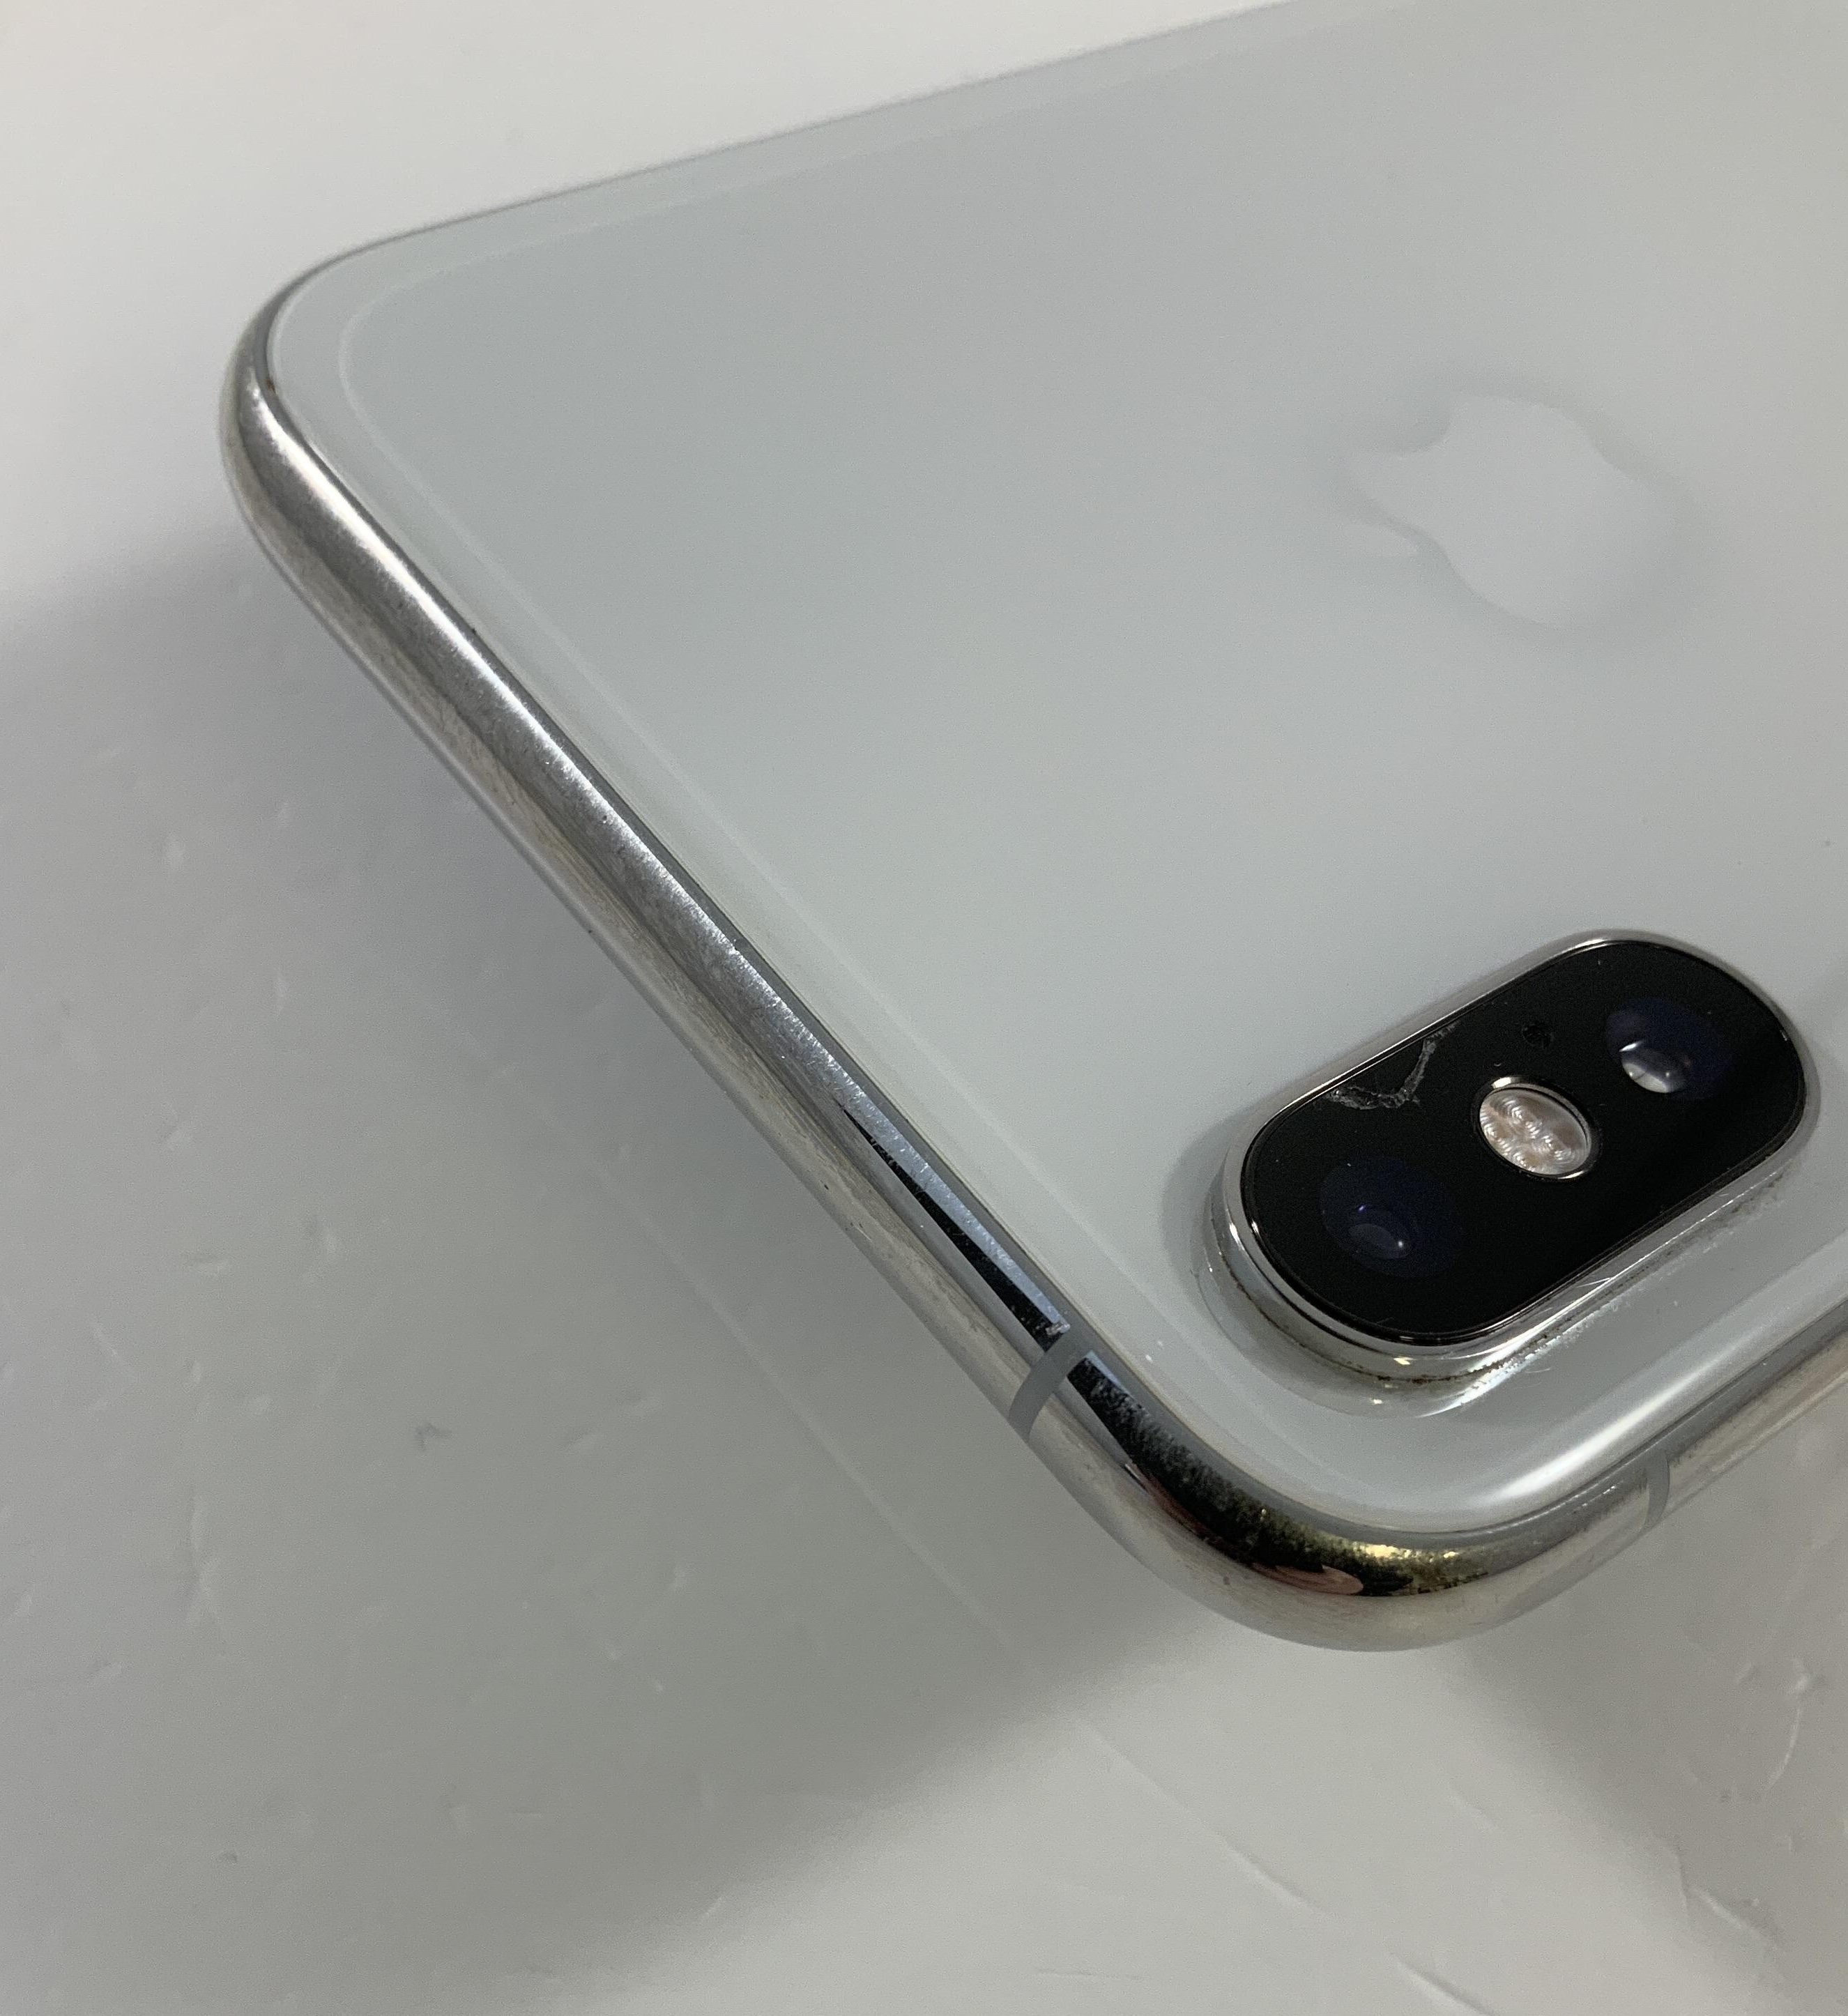 iPhone XS 64GB, 64GB, Silver, image 4